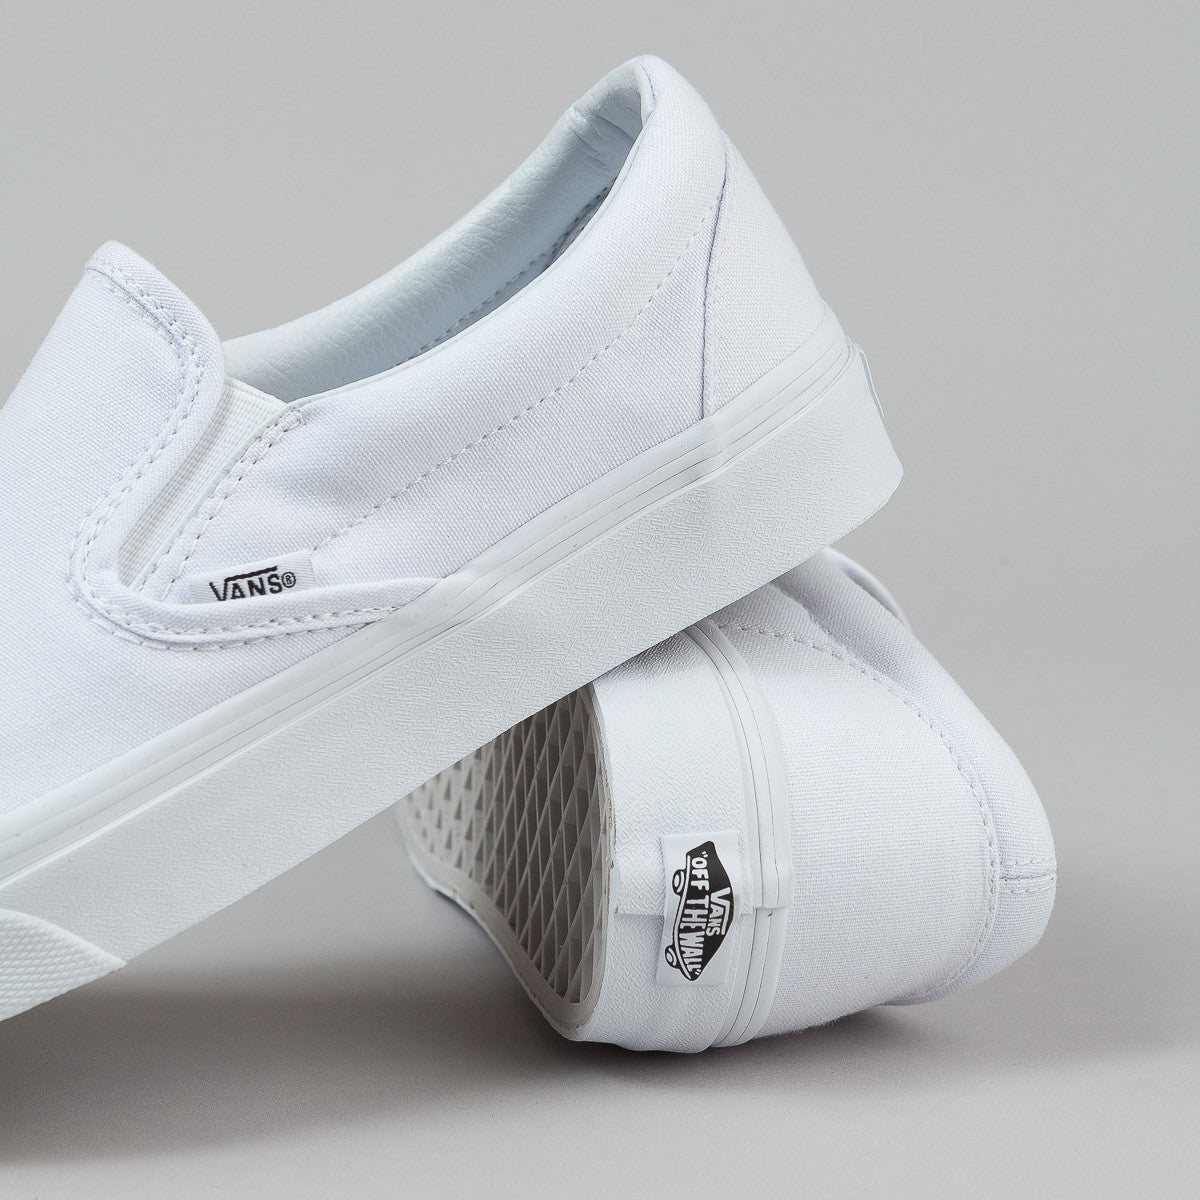 Vans Classic Slip On Shoes - True White Canvas